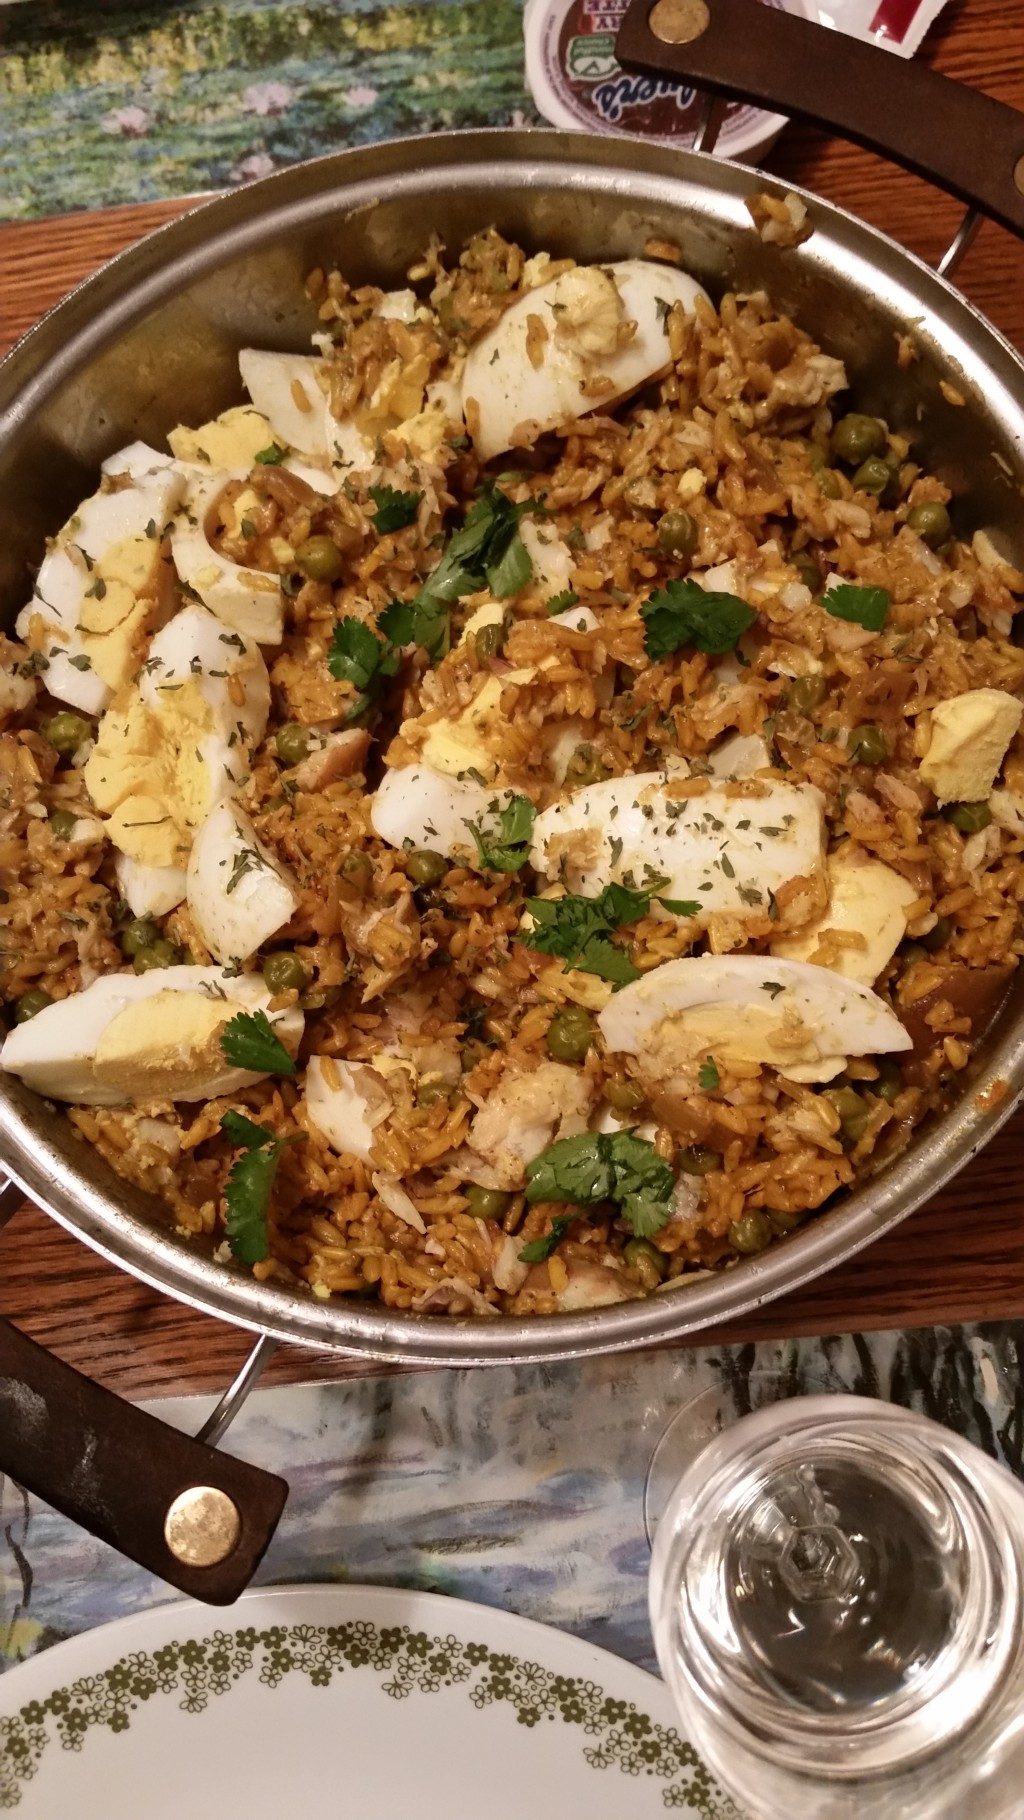 Kedgeree made by Katy and Tam